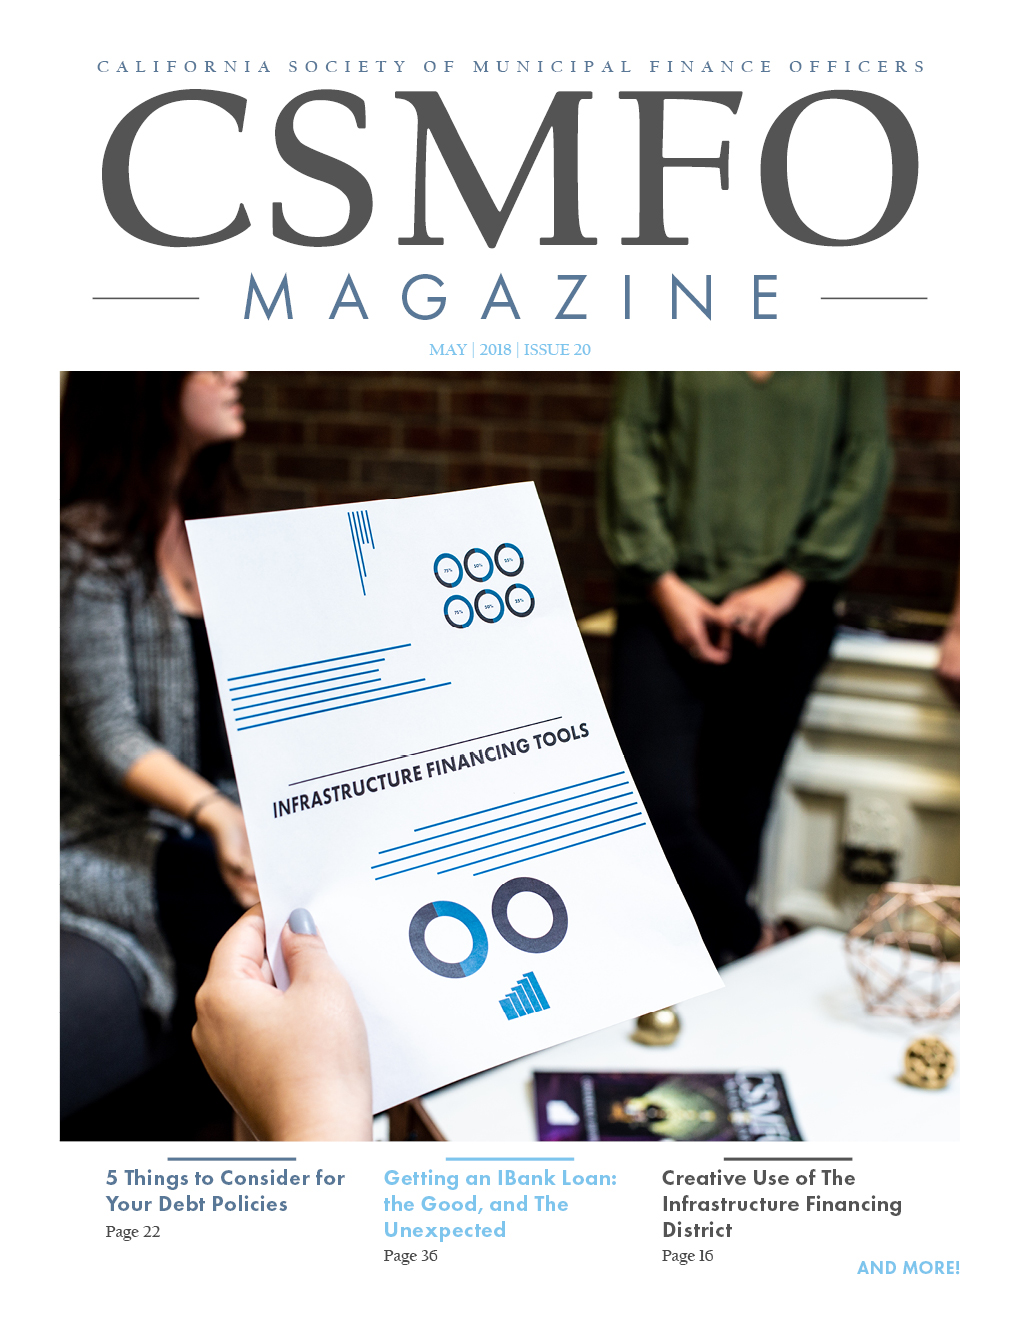 CSMFO Magazine – May 2018